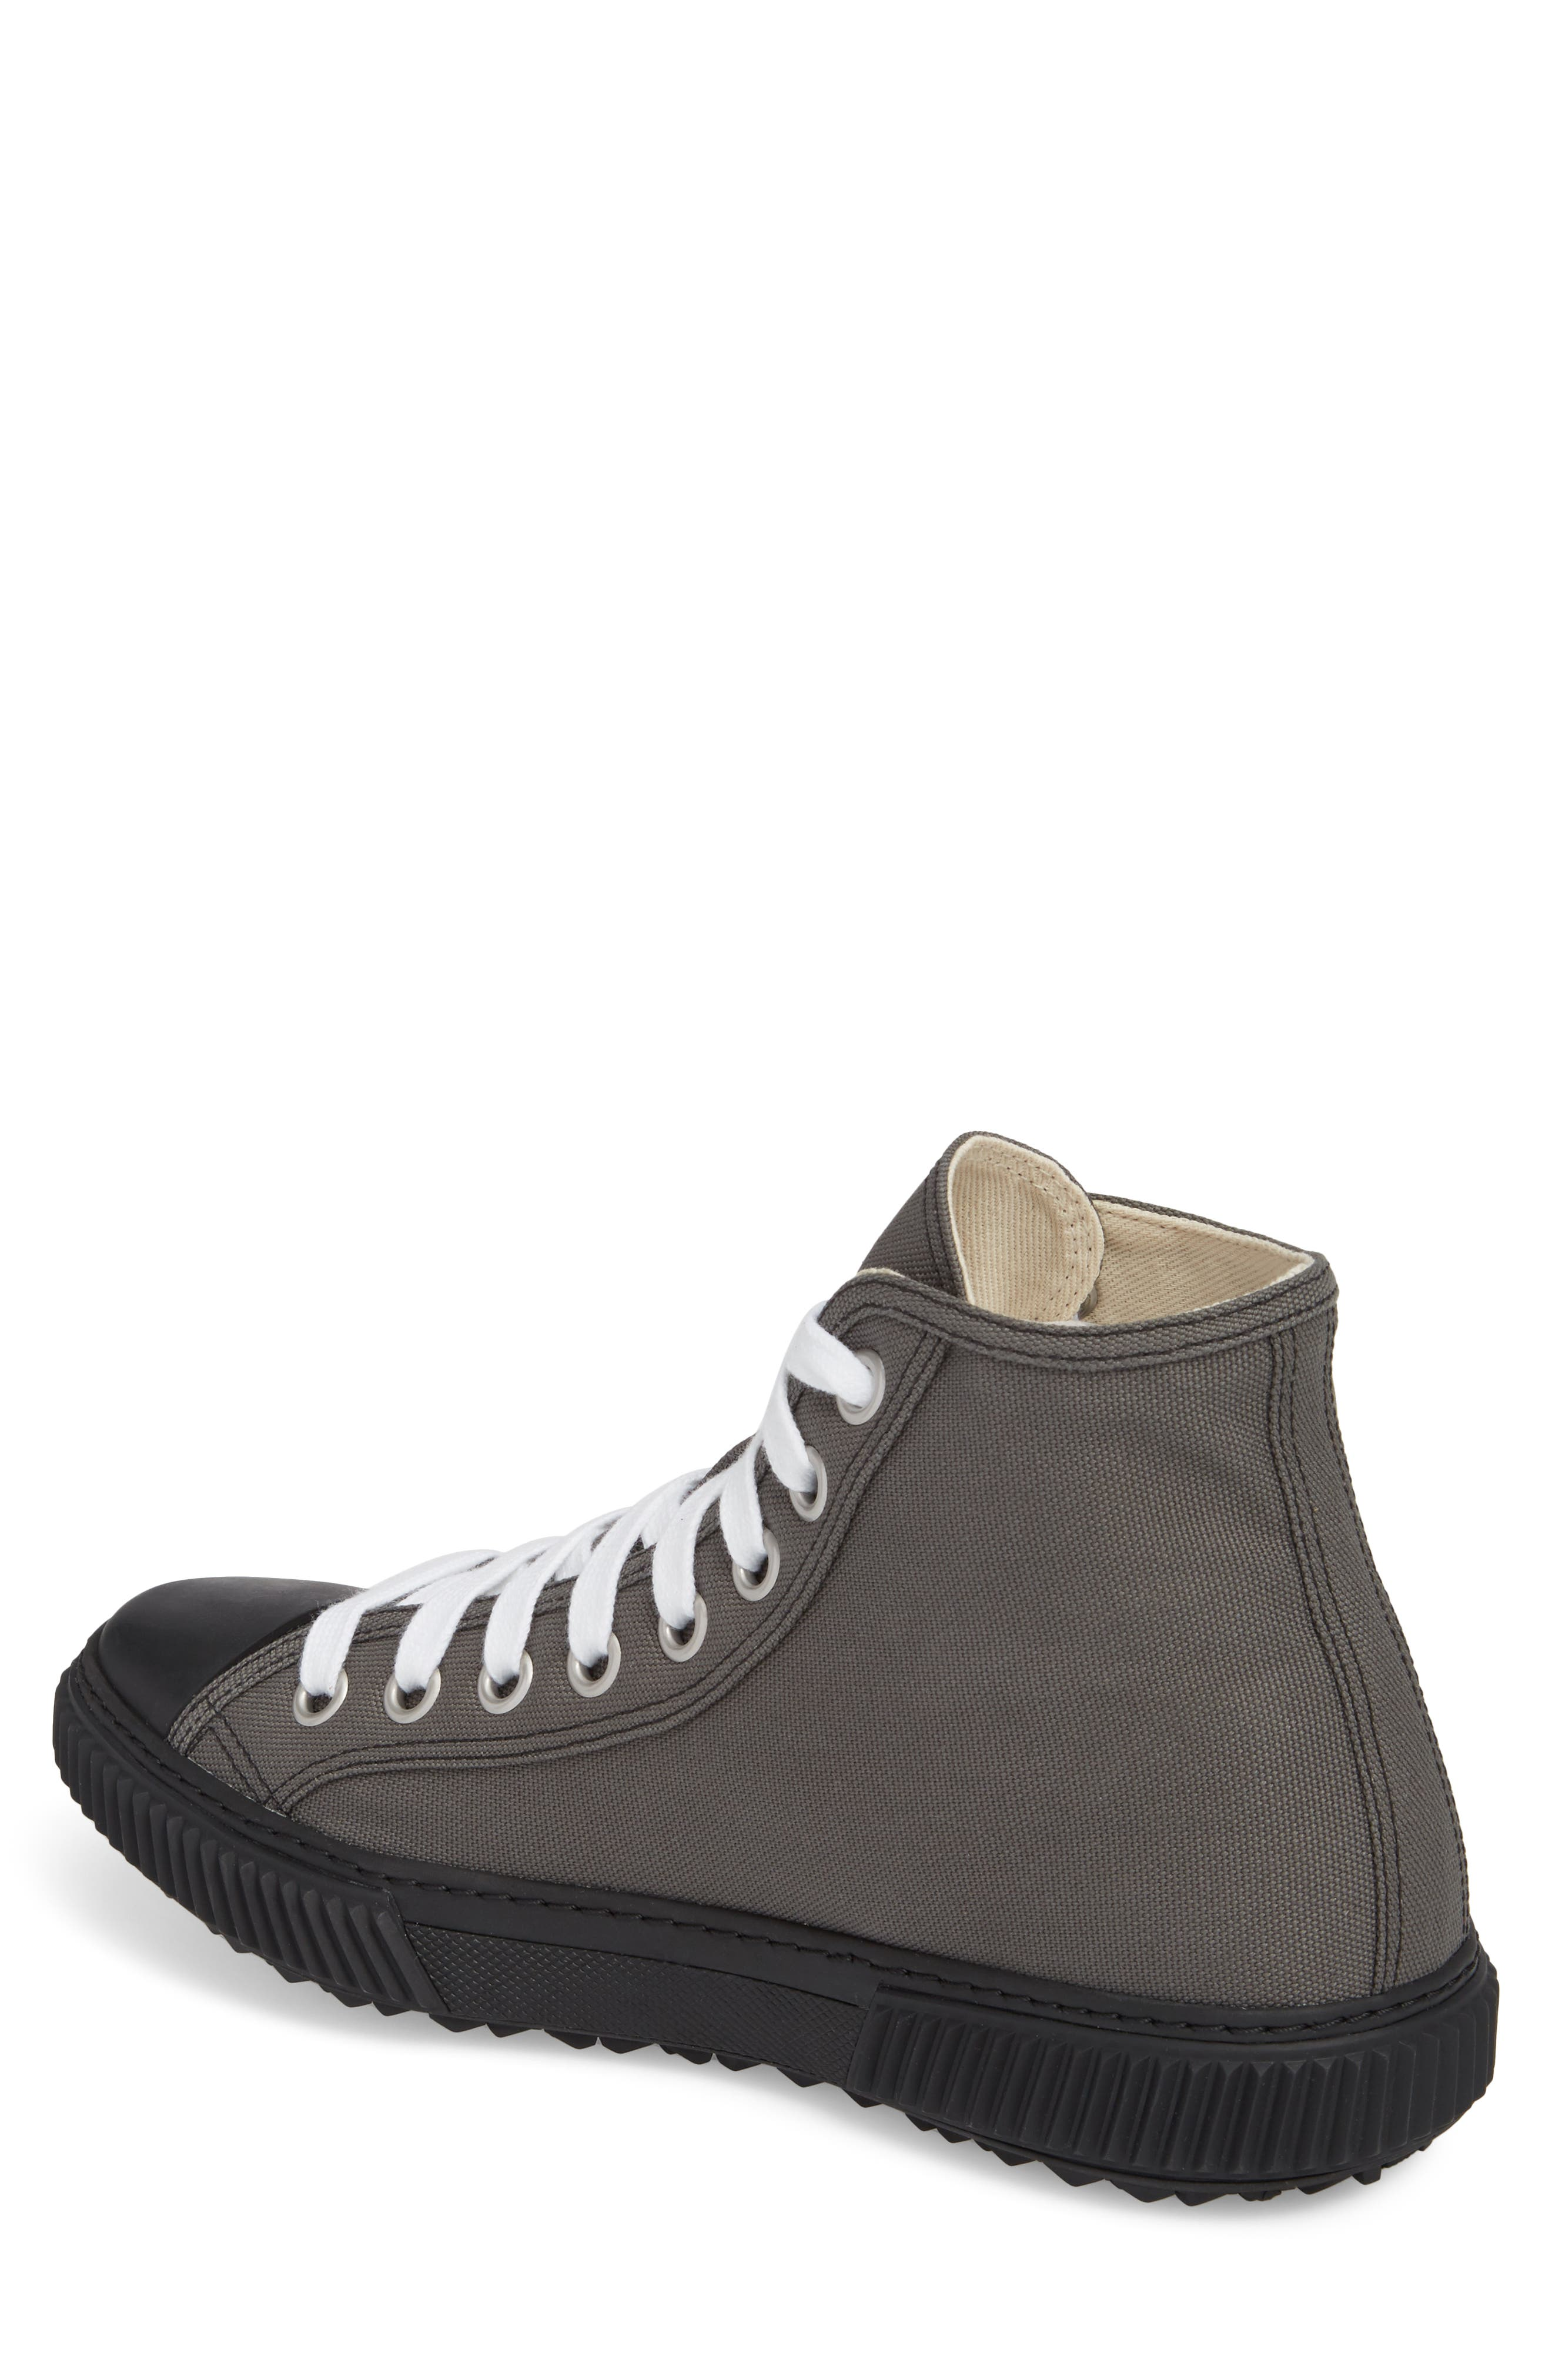 Cap Toe High Top Sneaker,                             Alternate thumbnail 2, color,                             Ardesia Nero